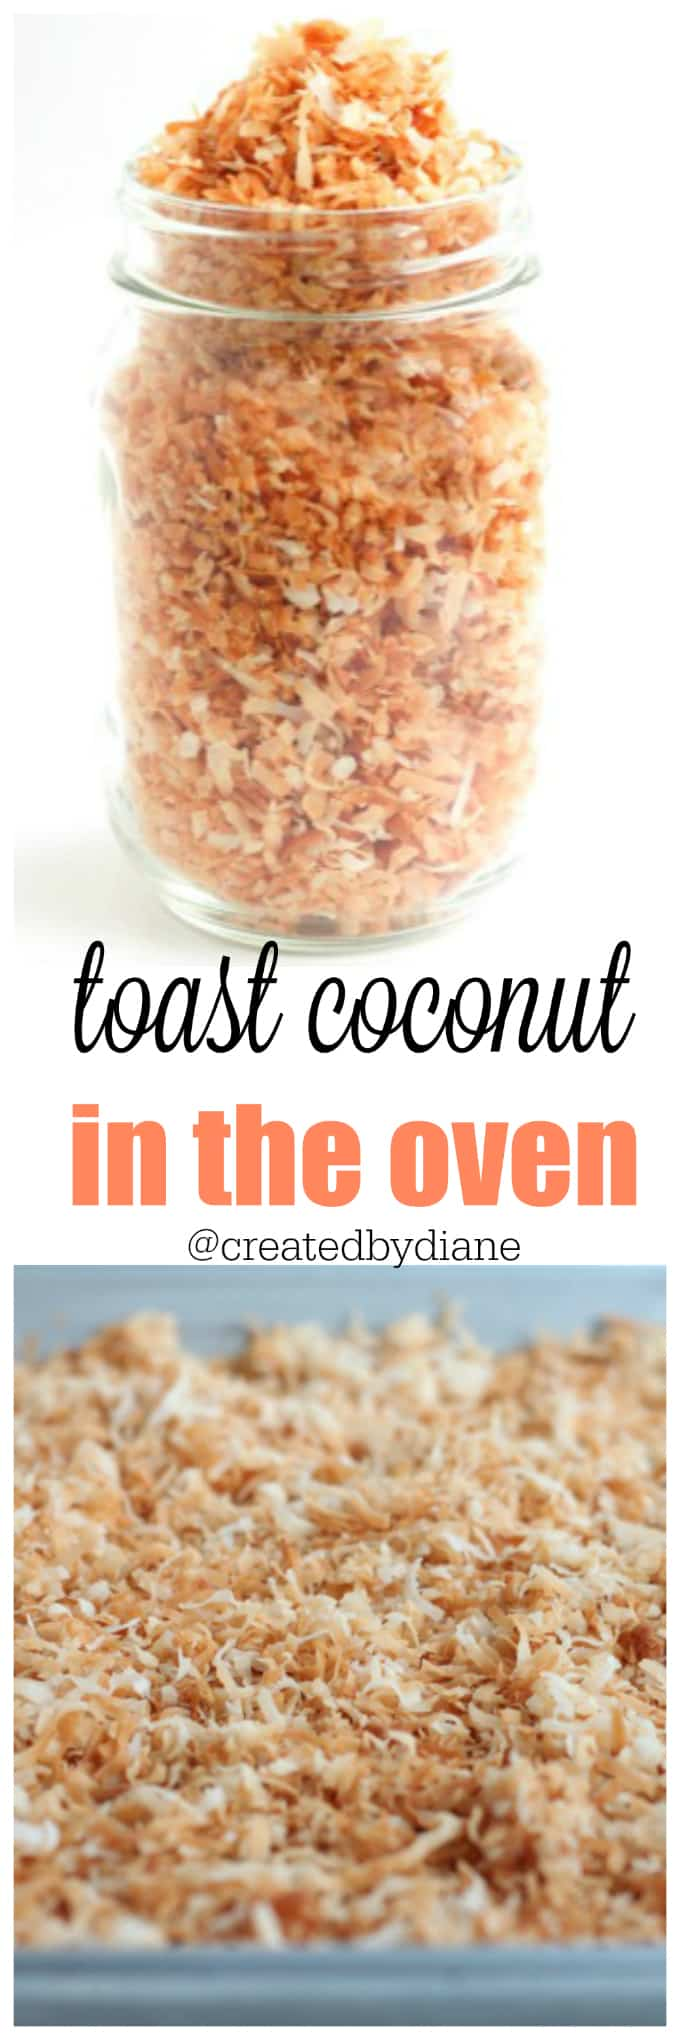 toast coconut in the OVEN, easily and evenly @createdbydiane toasted coconut